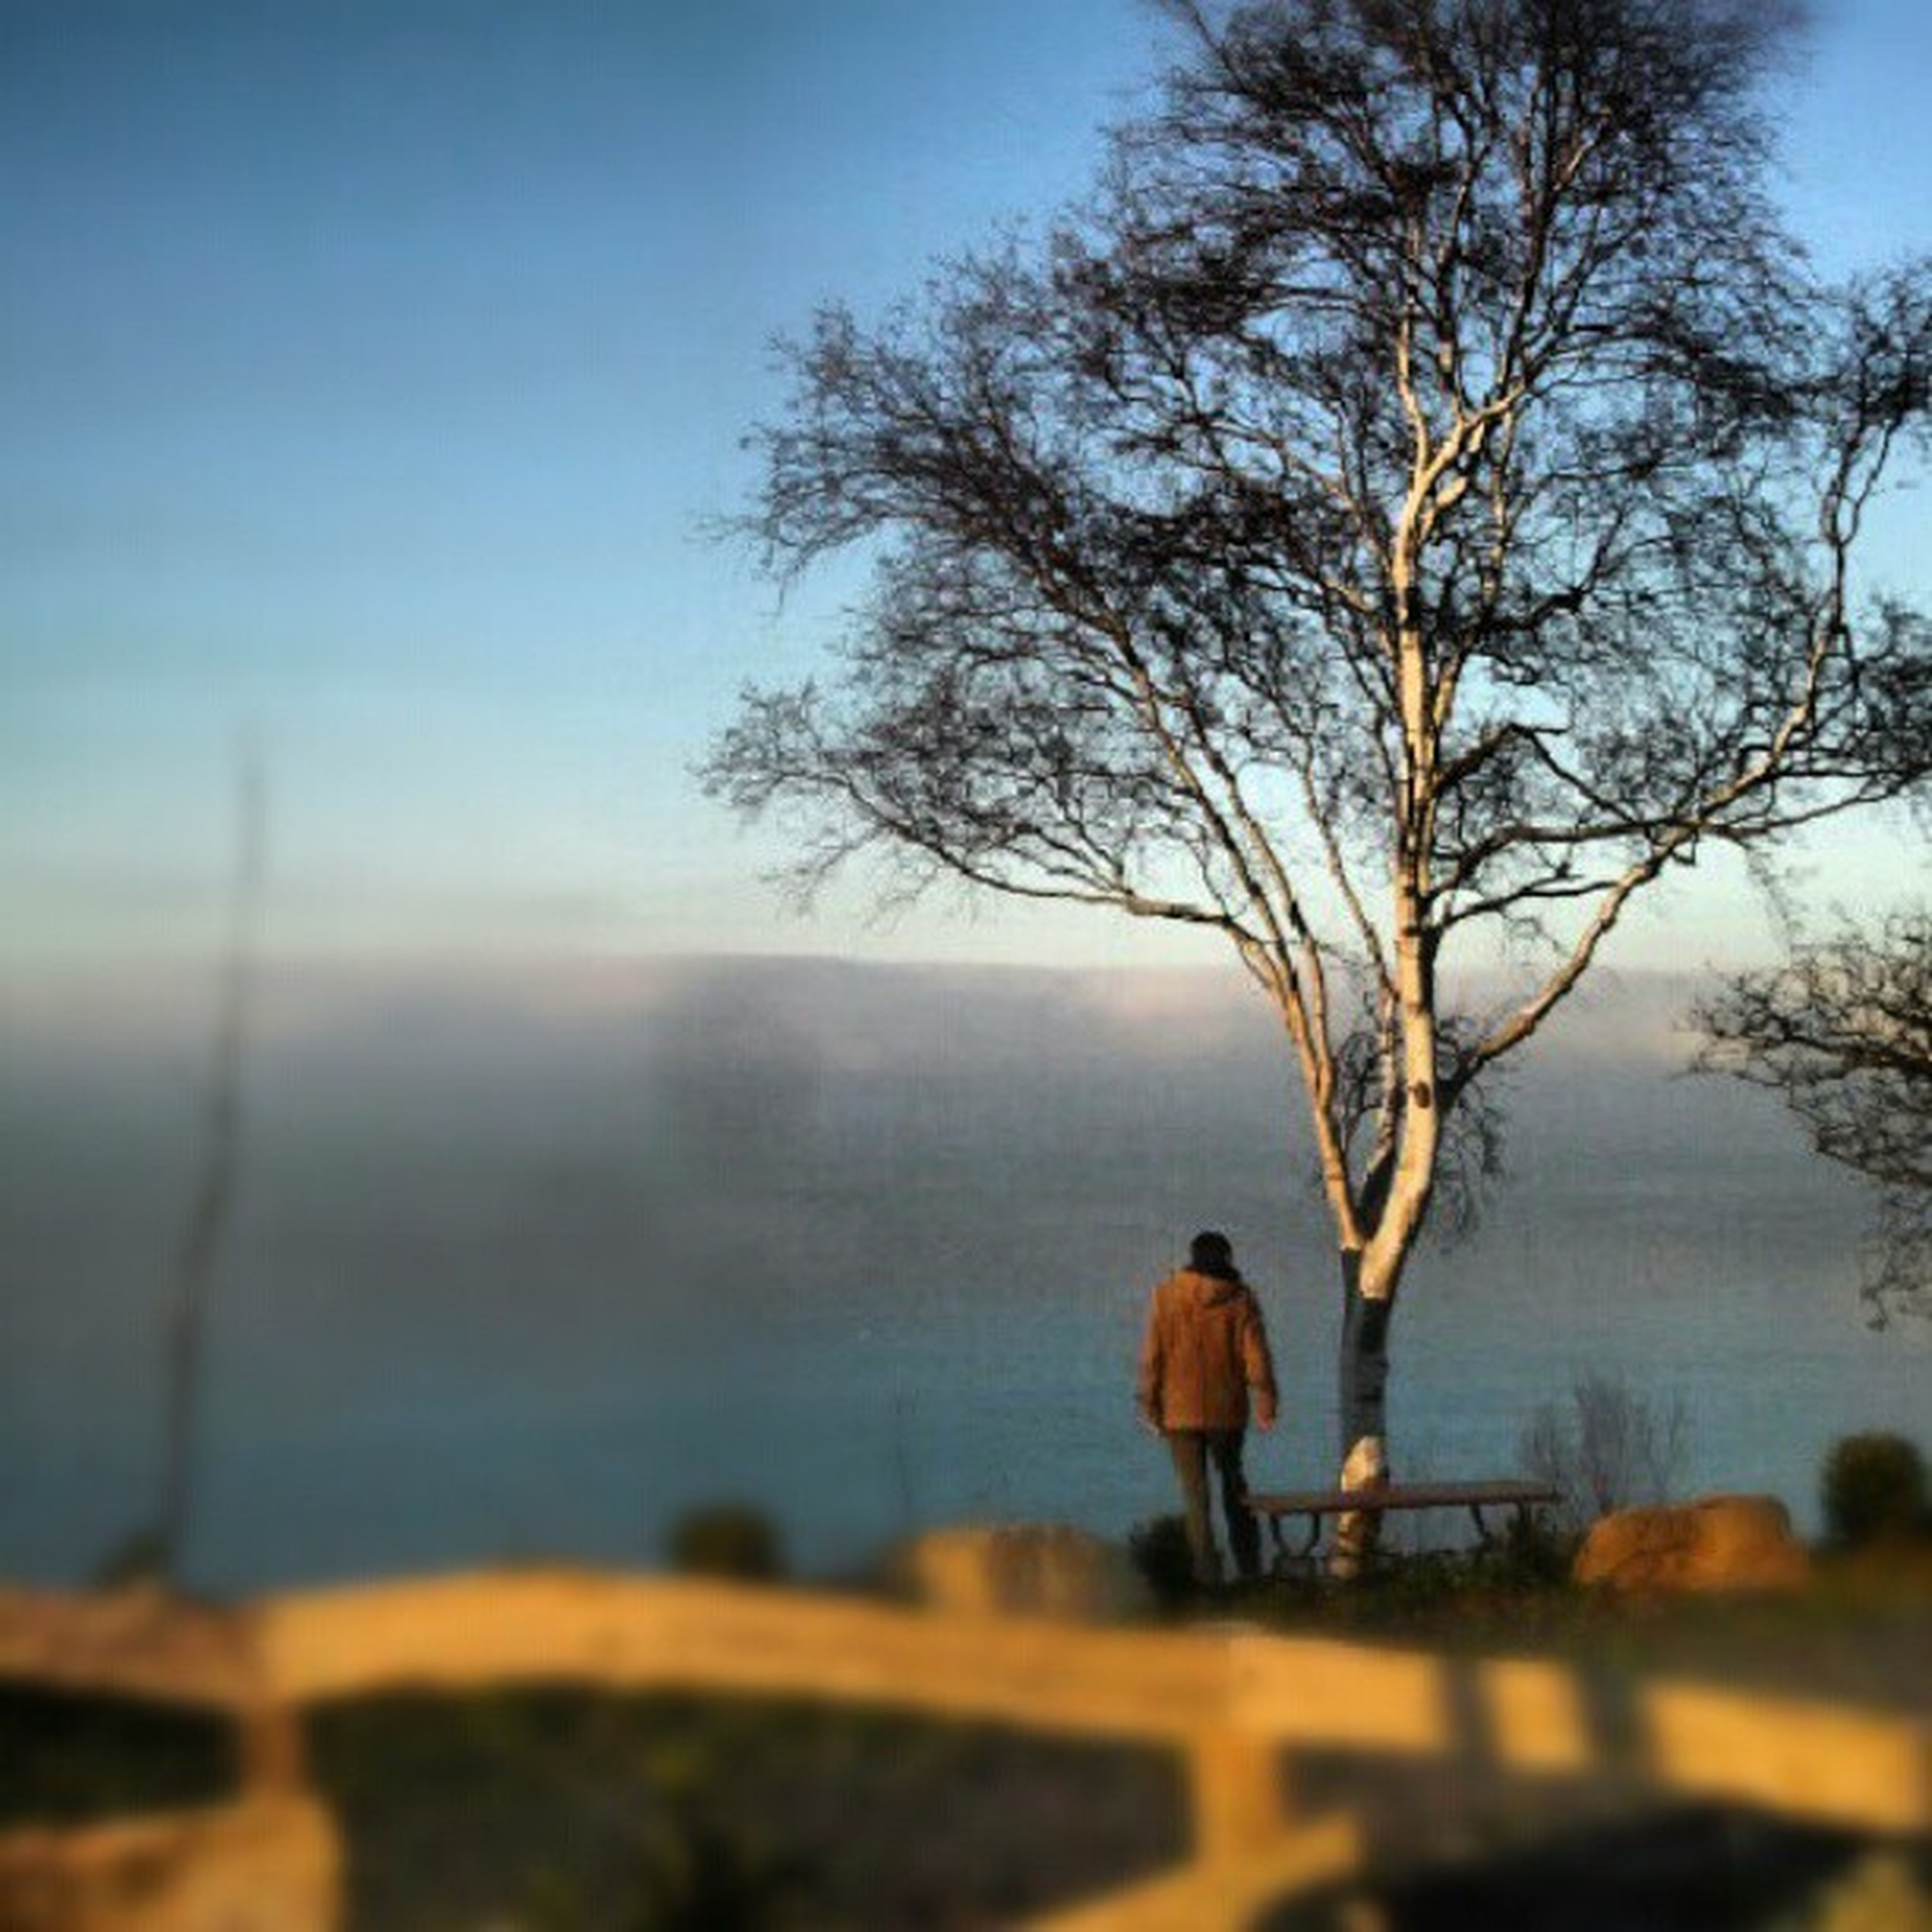 tree, focus on foreground, tranquility, tranquil scene, sky, selective focus, bare tree, landscape, nature, scenics, branch, beauty in nature, clear sky, outdoors, dusk, no people, day, non-urban scene, close-up, lake